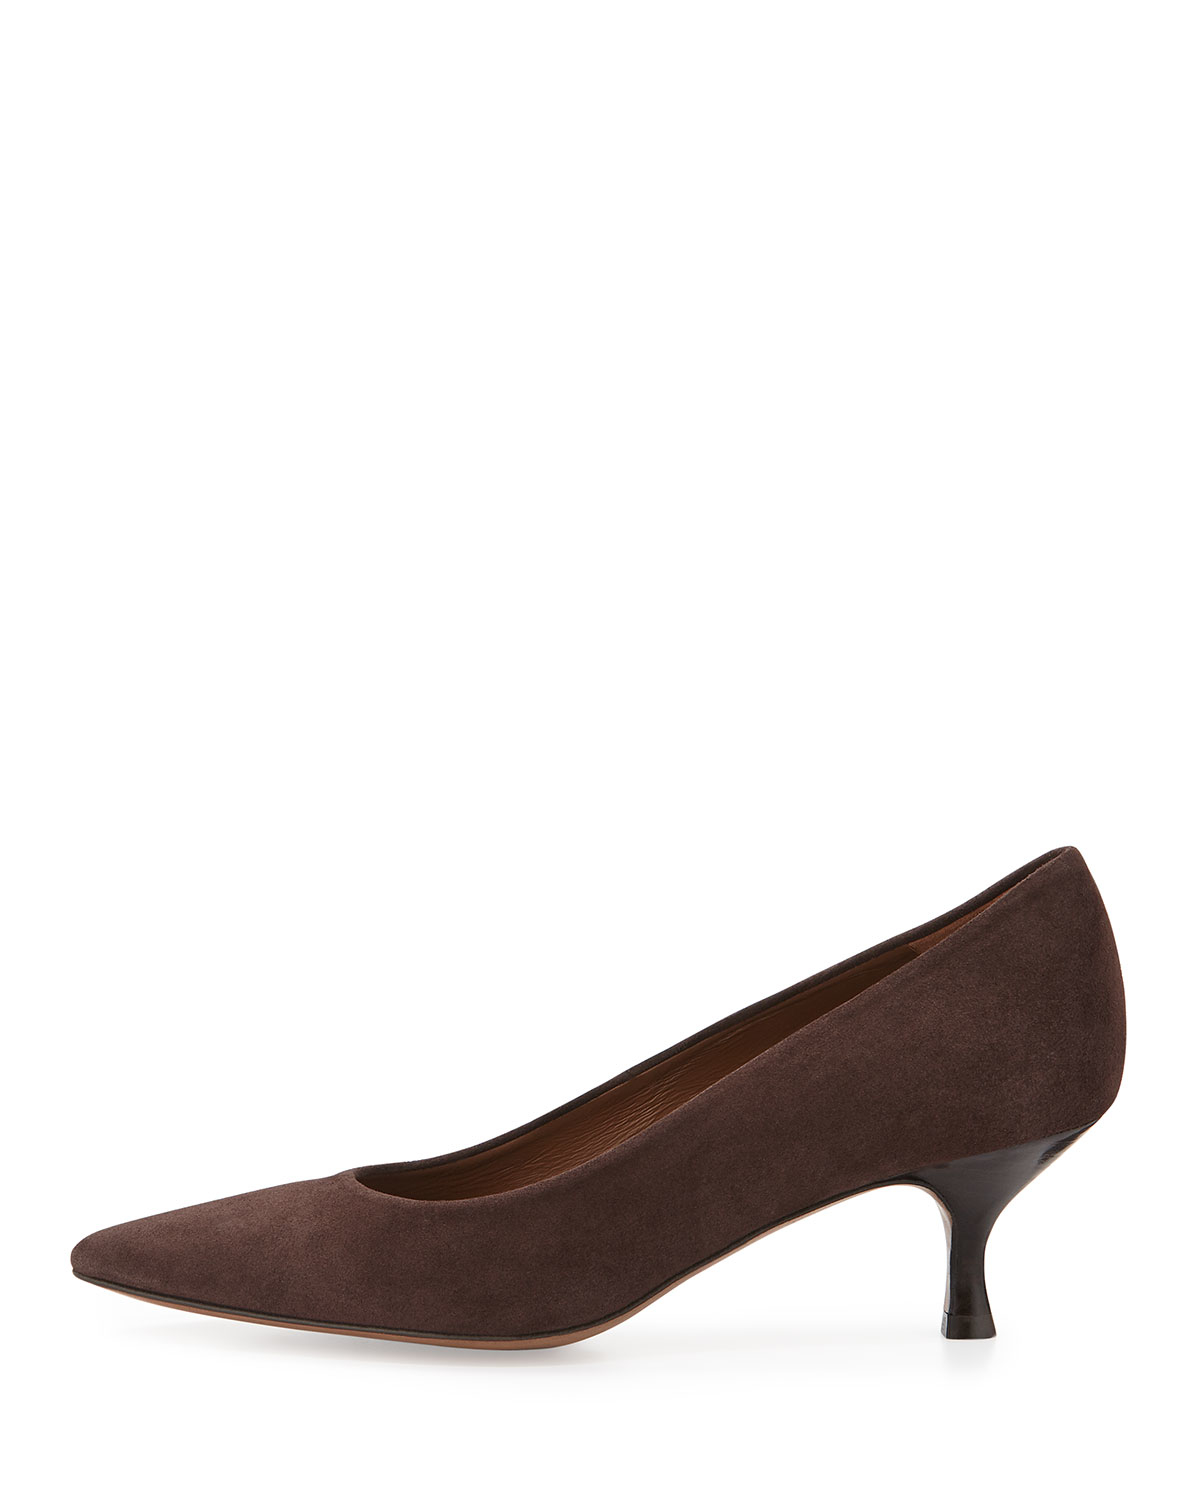 Donald J Pliner Rome Suede Pumps In Brown Lyst